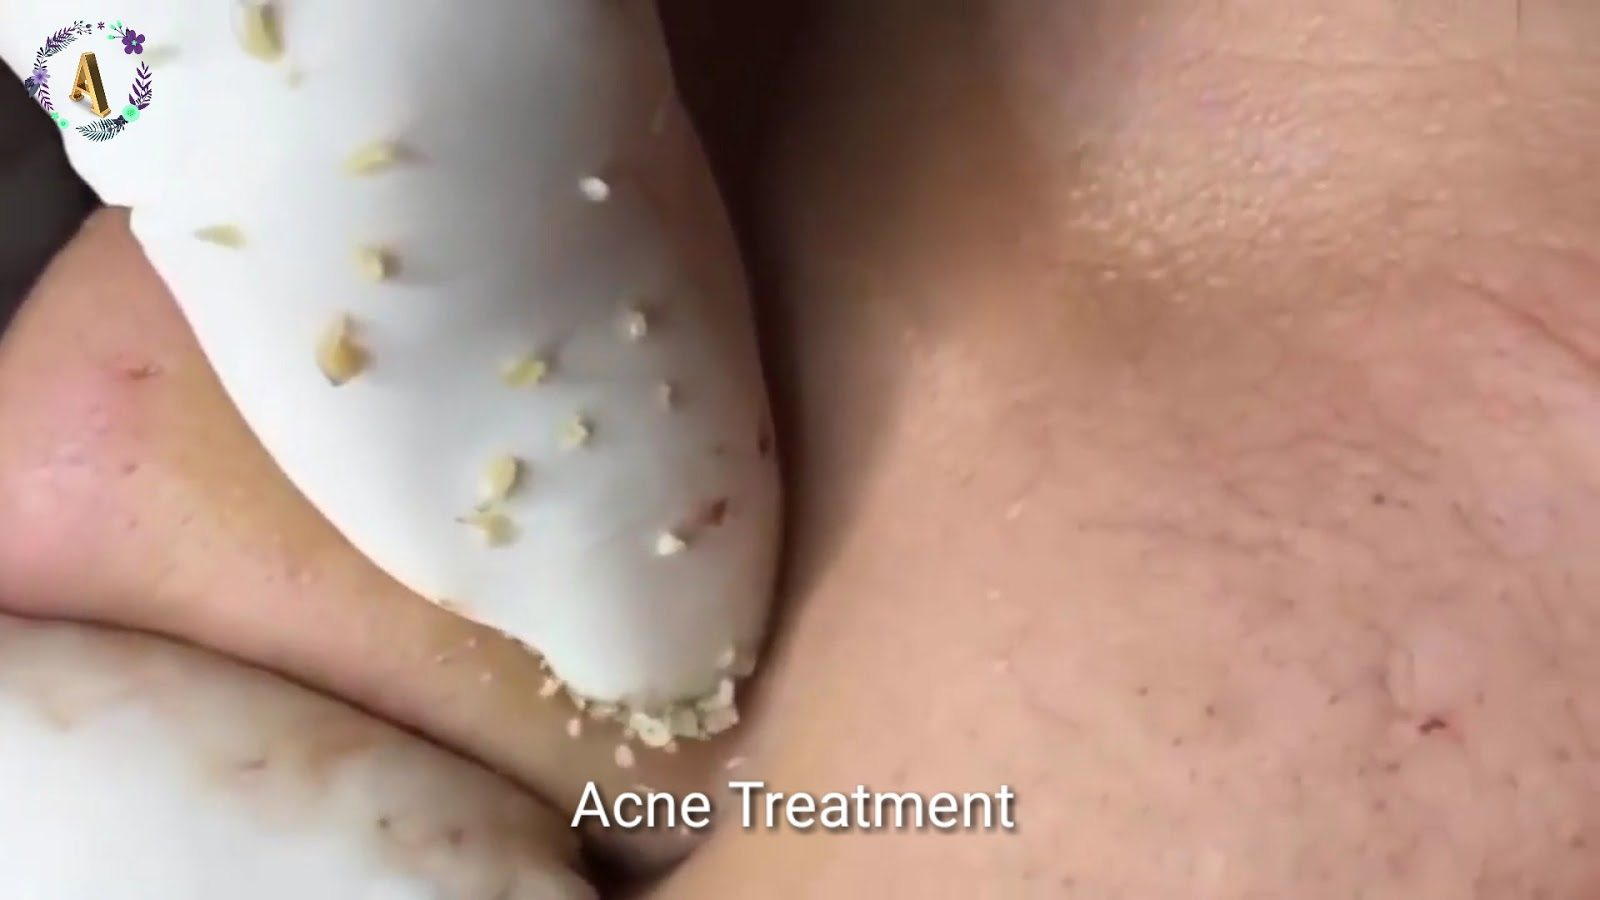 The Best Acne Treatment Blog Cystic Acne Treatment With Relaxing Music Sleeping Music 3 กดส วอ ดต น